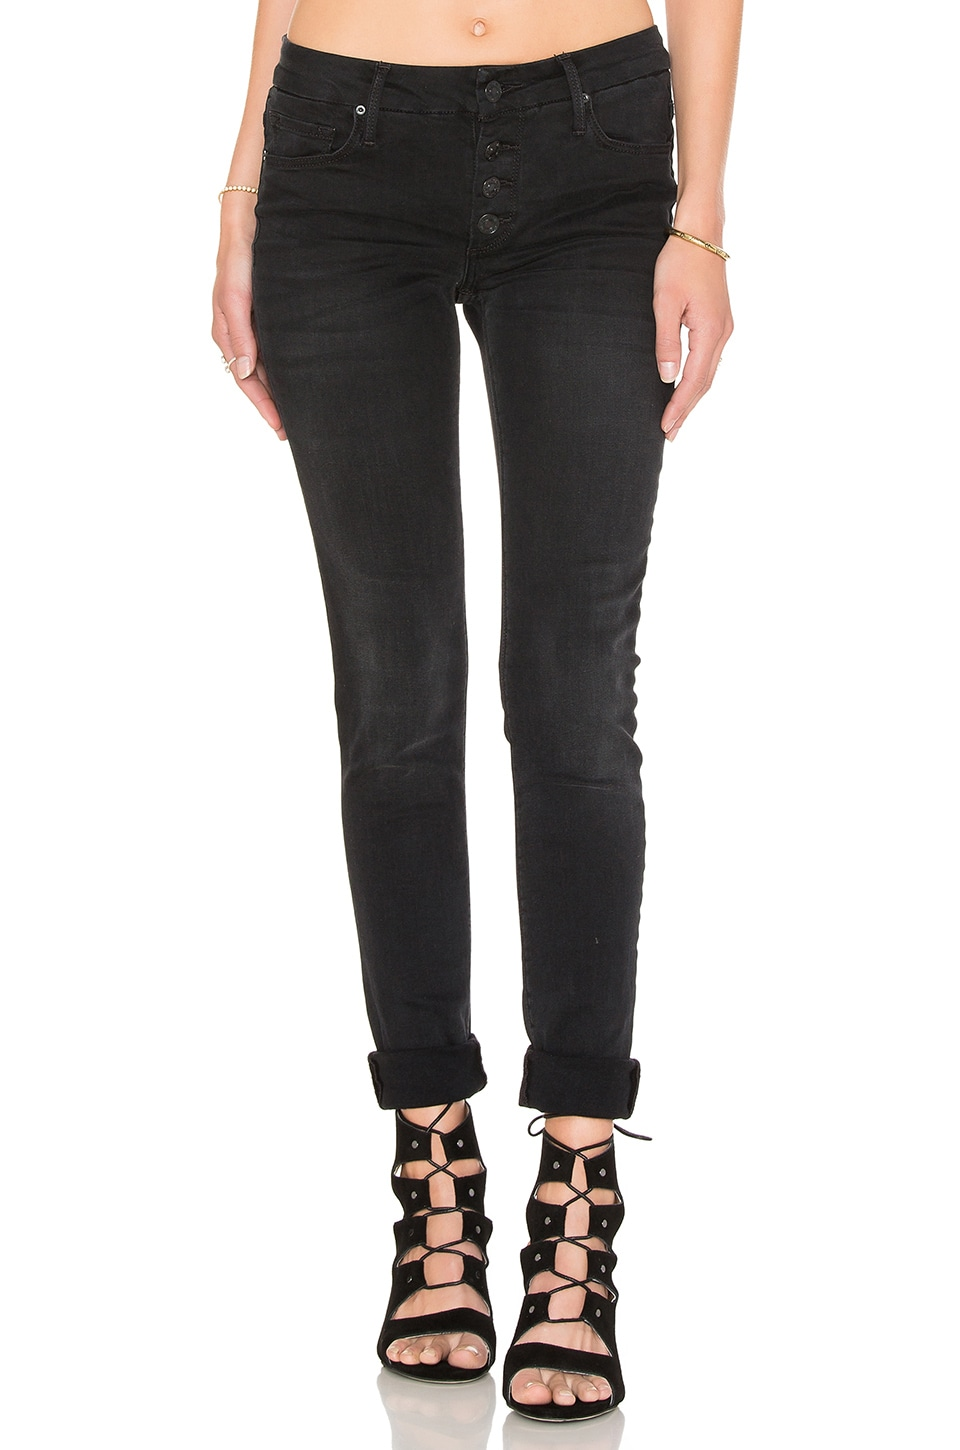 Candice Mid Rise Super Skinny by Black Orchid